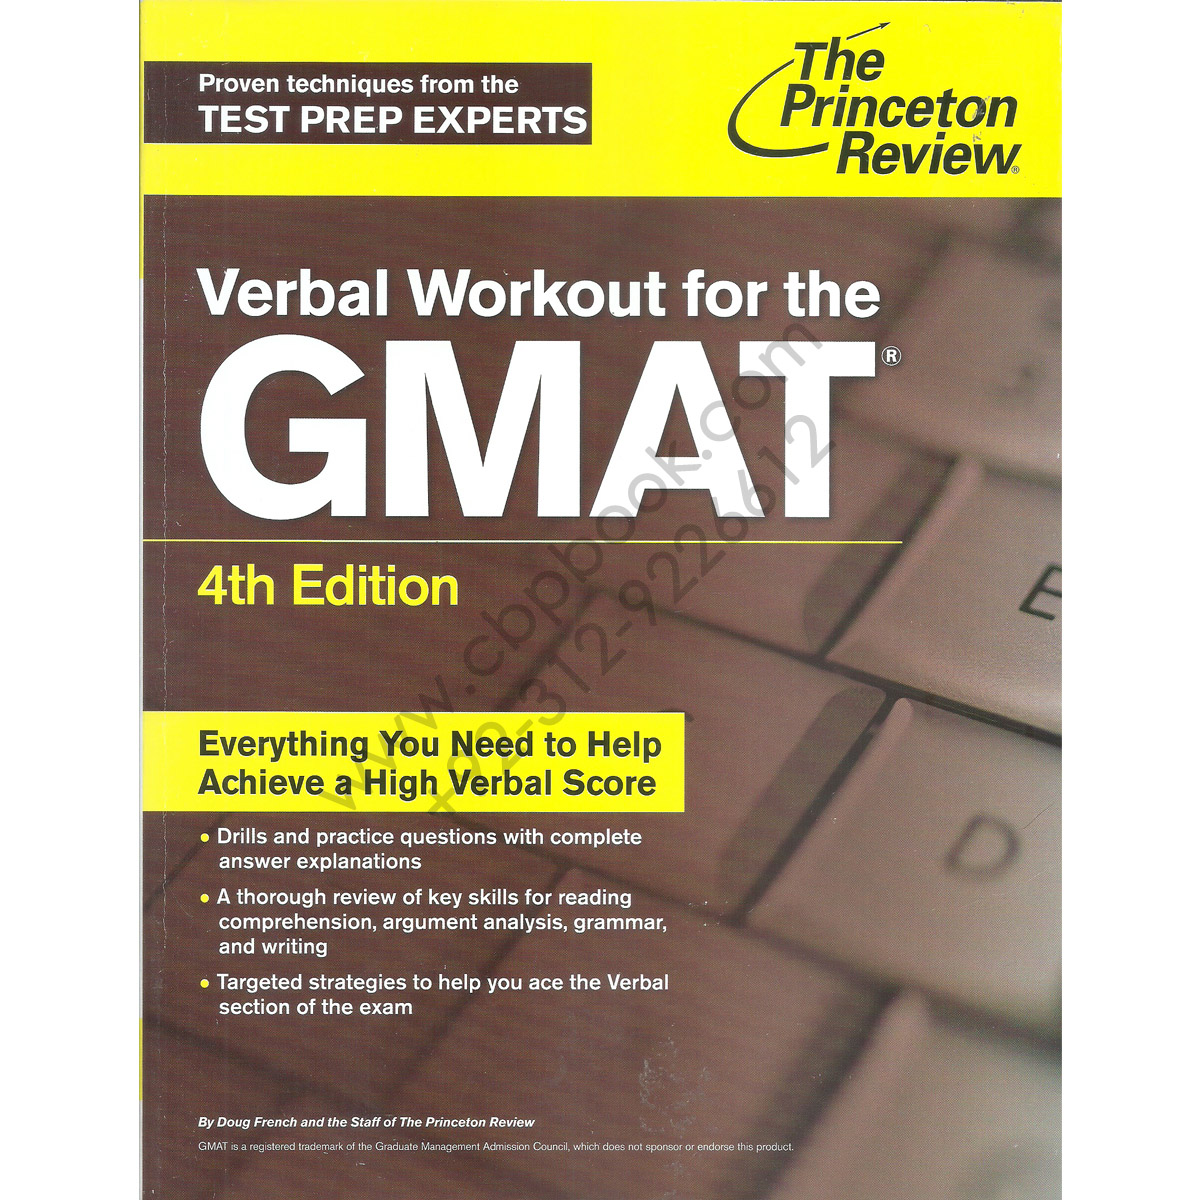 the princeton review verbal workout for the gmat 4th edition